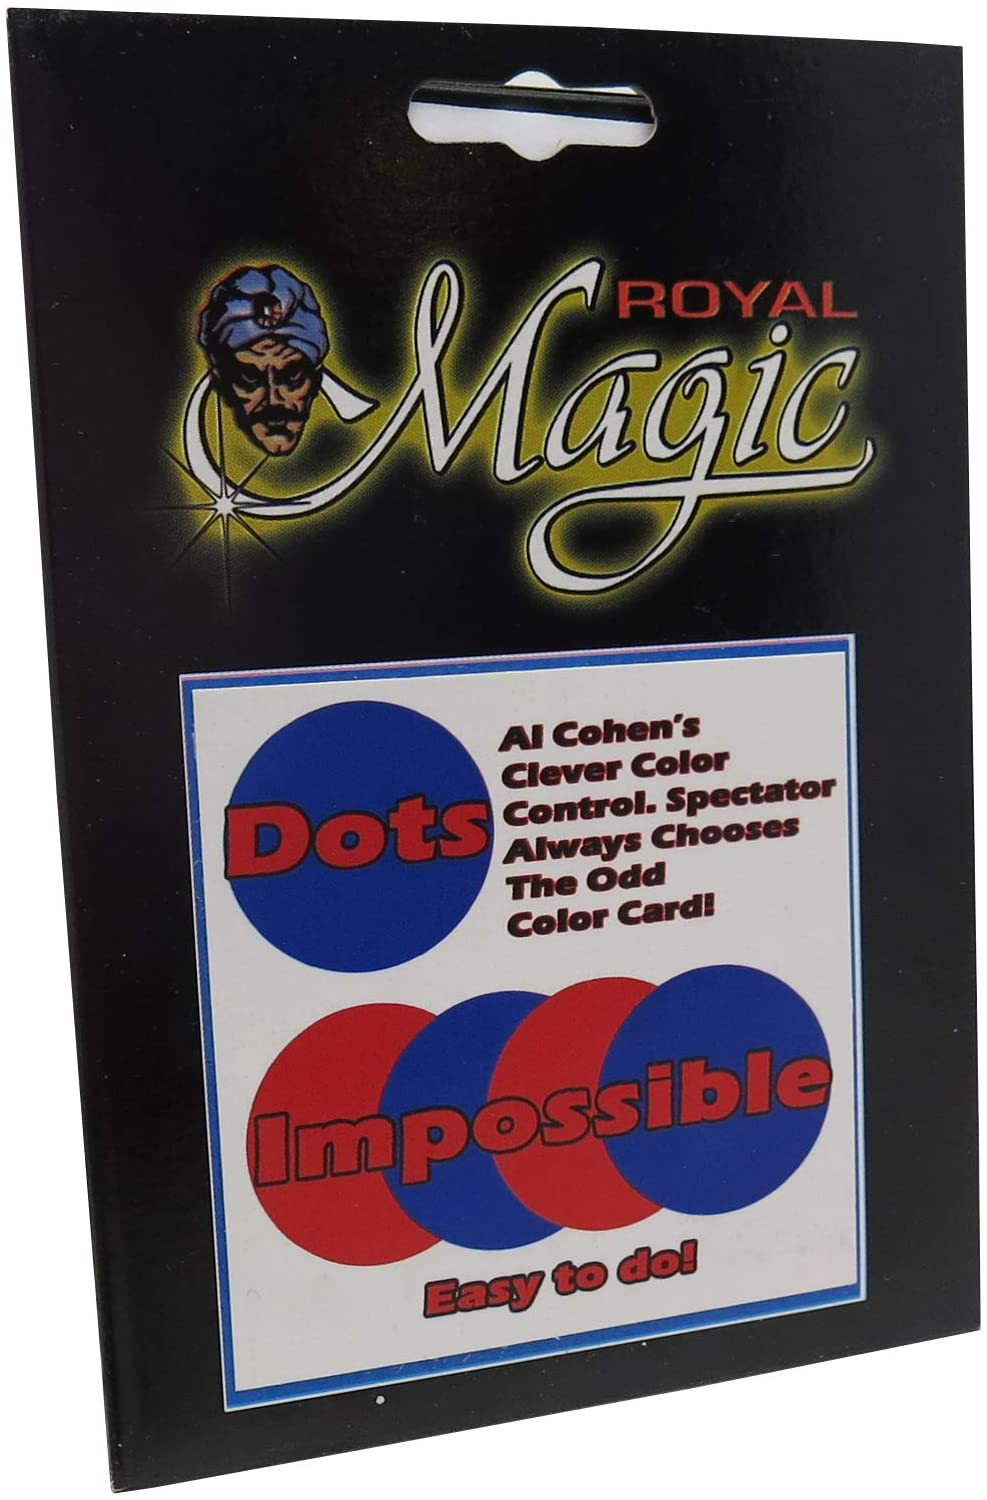 Al Cohens Dots Impossible - A Sleightless Magic Miracle Printed on Royal Playing Card Stock!